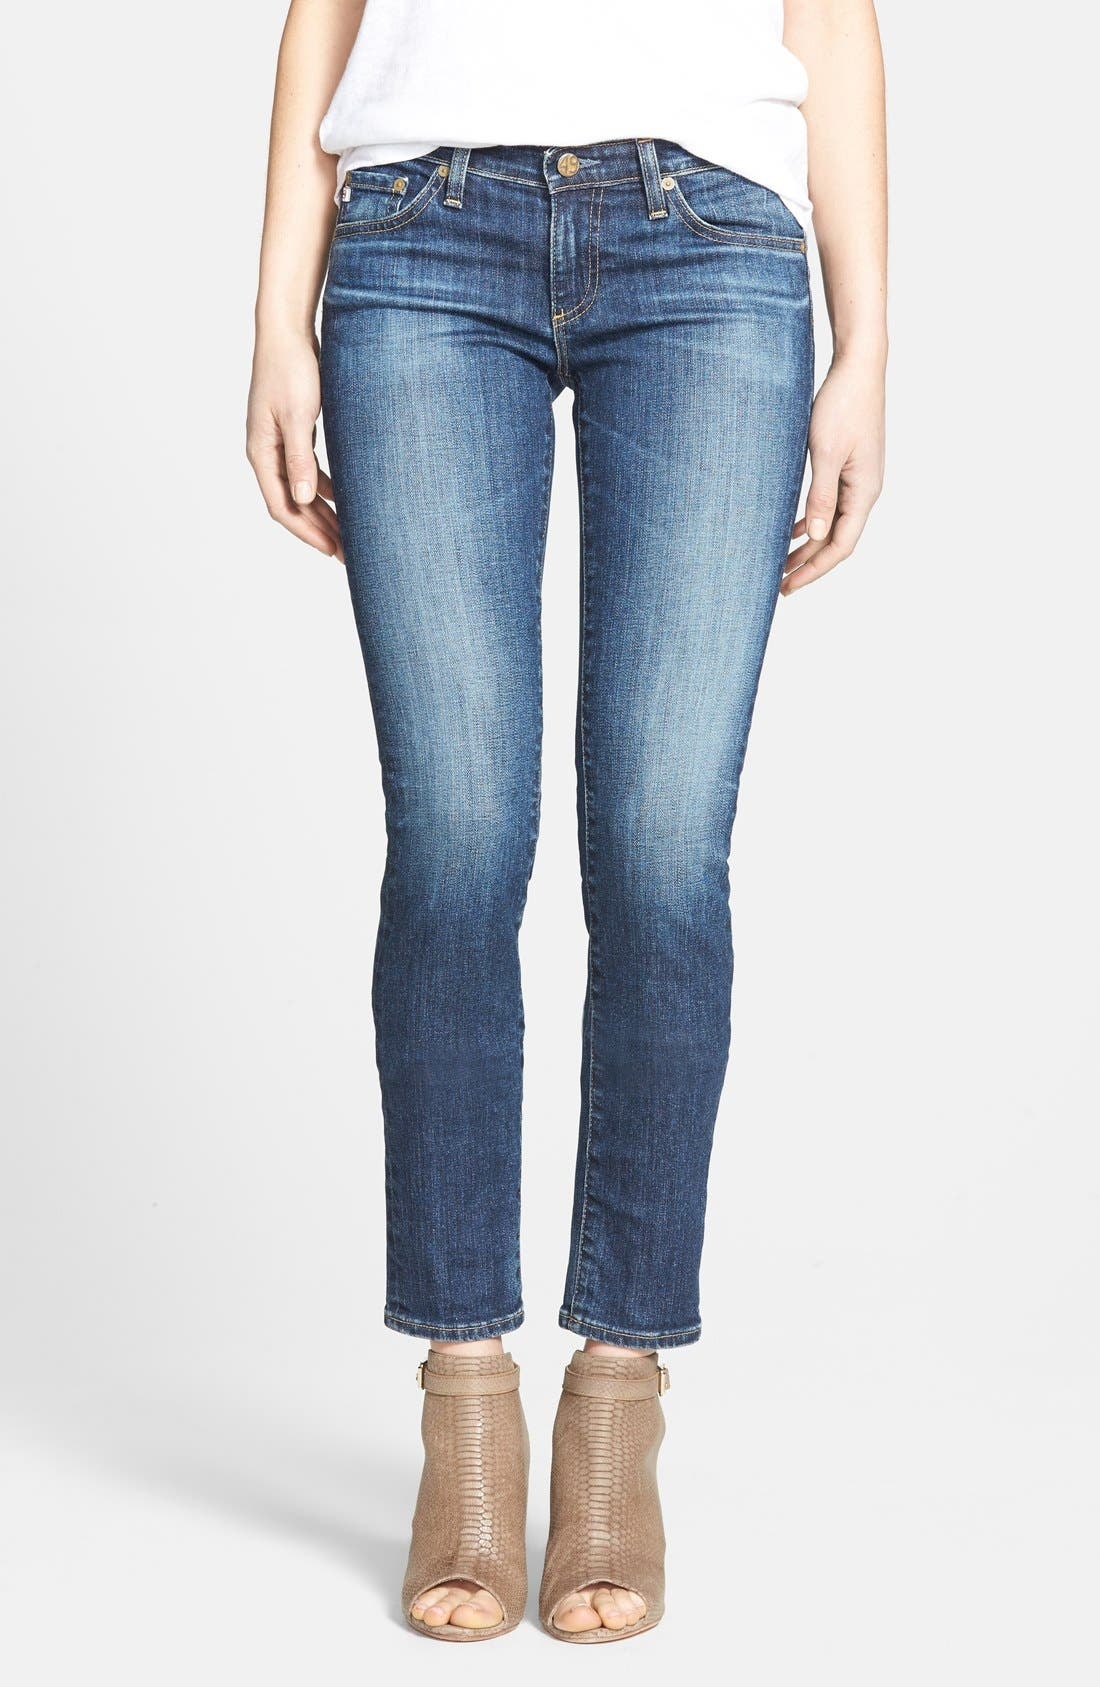 Alternate Image 1 Selected - AG 'The Stilt' Cigarette Leg Stretch Jeans (Eleven Year Intrigue) (Nordstrom Exclusive)